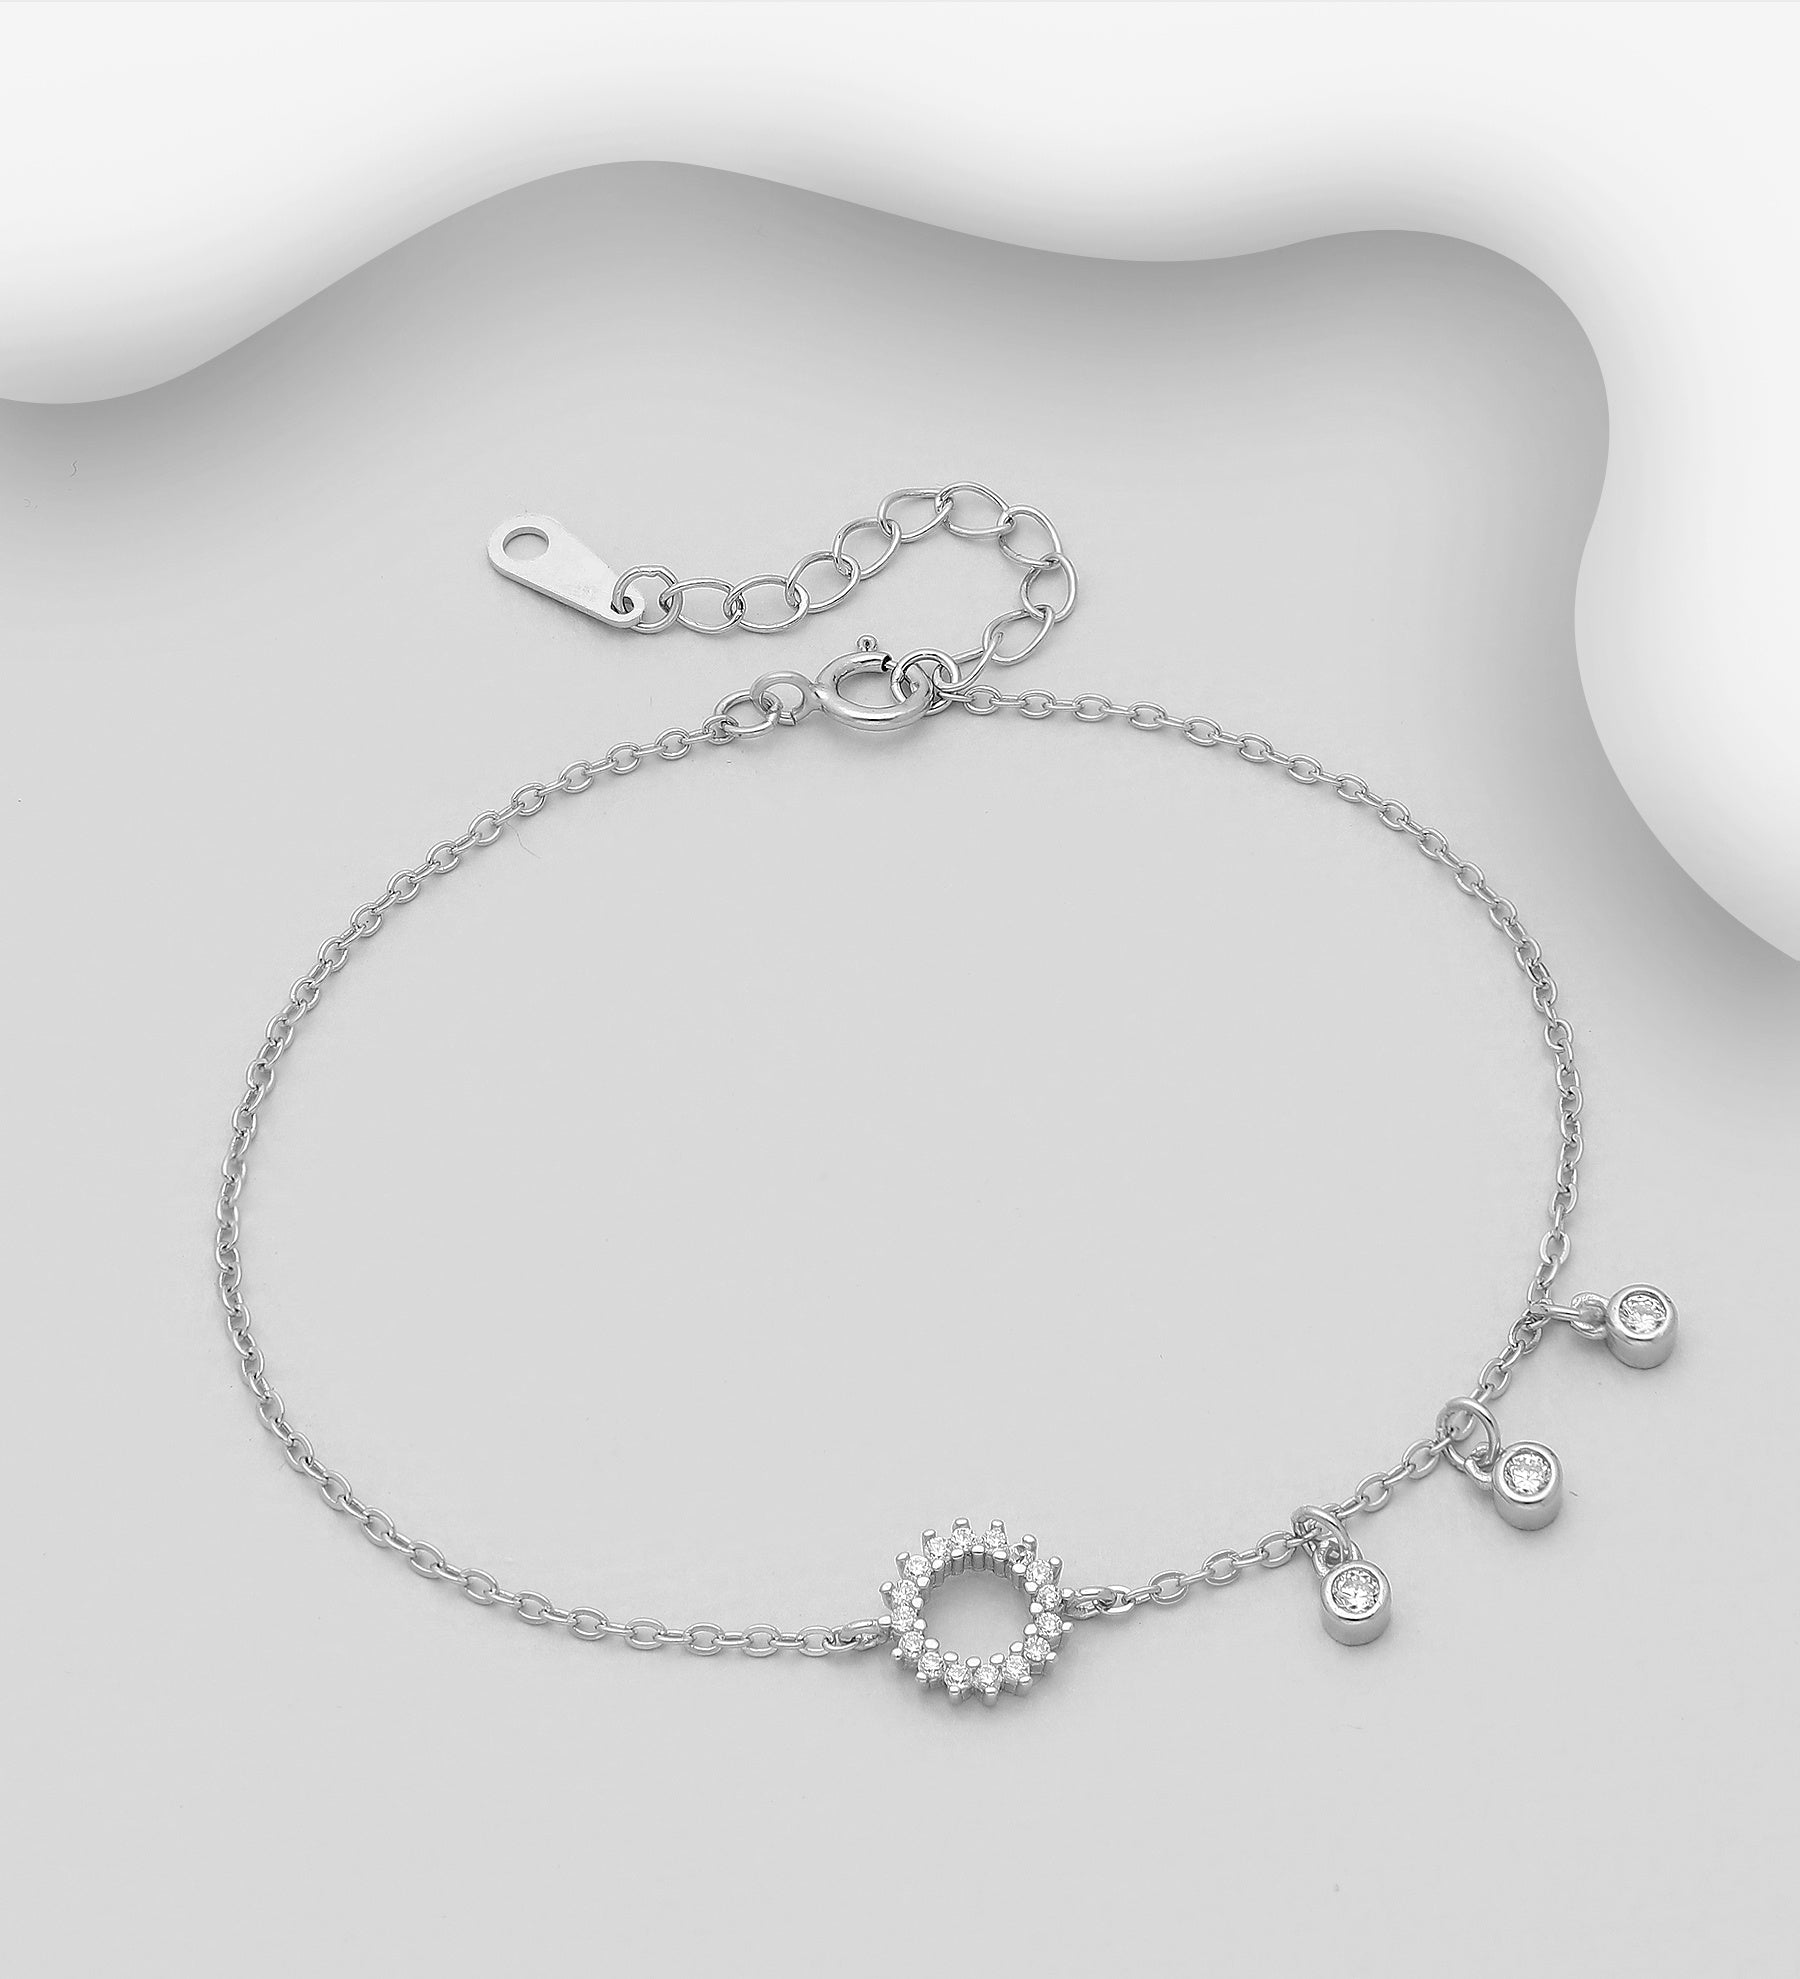 3 CZ Eternity Chain Bracelet